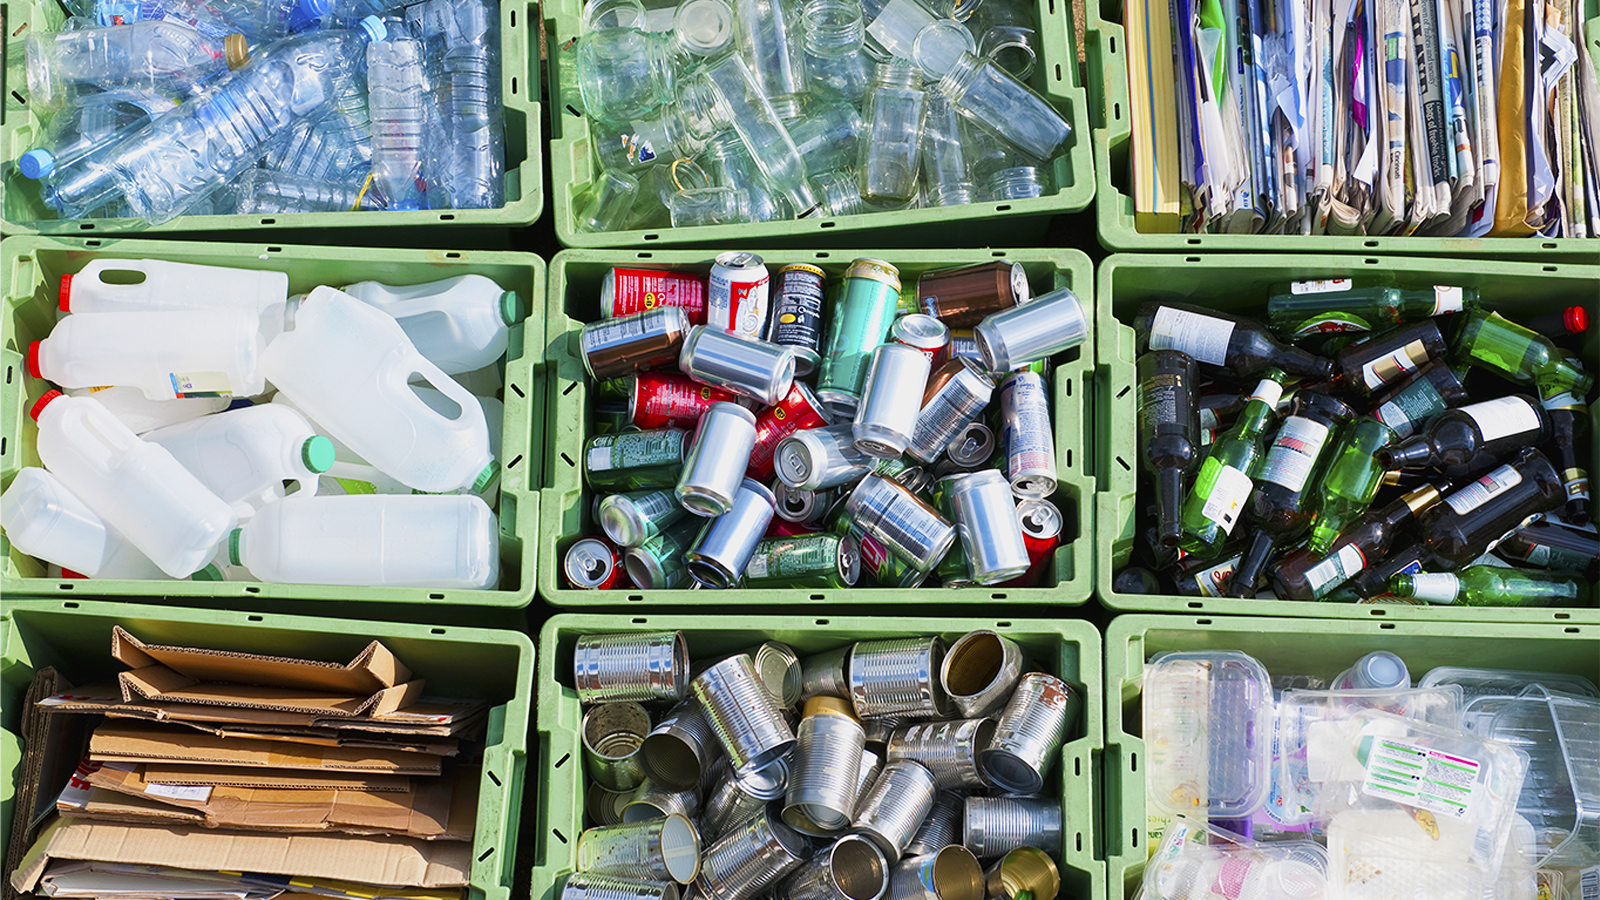 How To Make Sure Your Recycling Gets Recycled